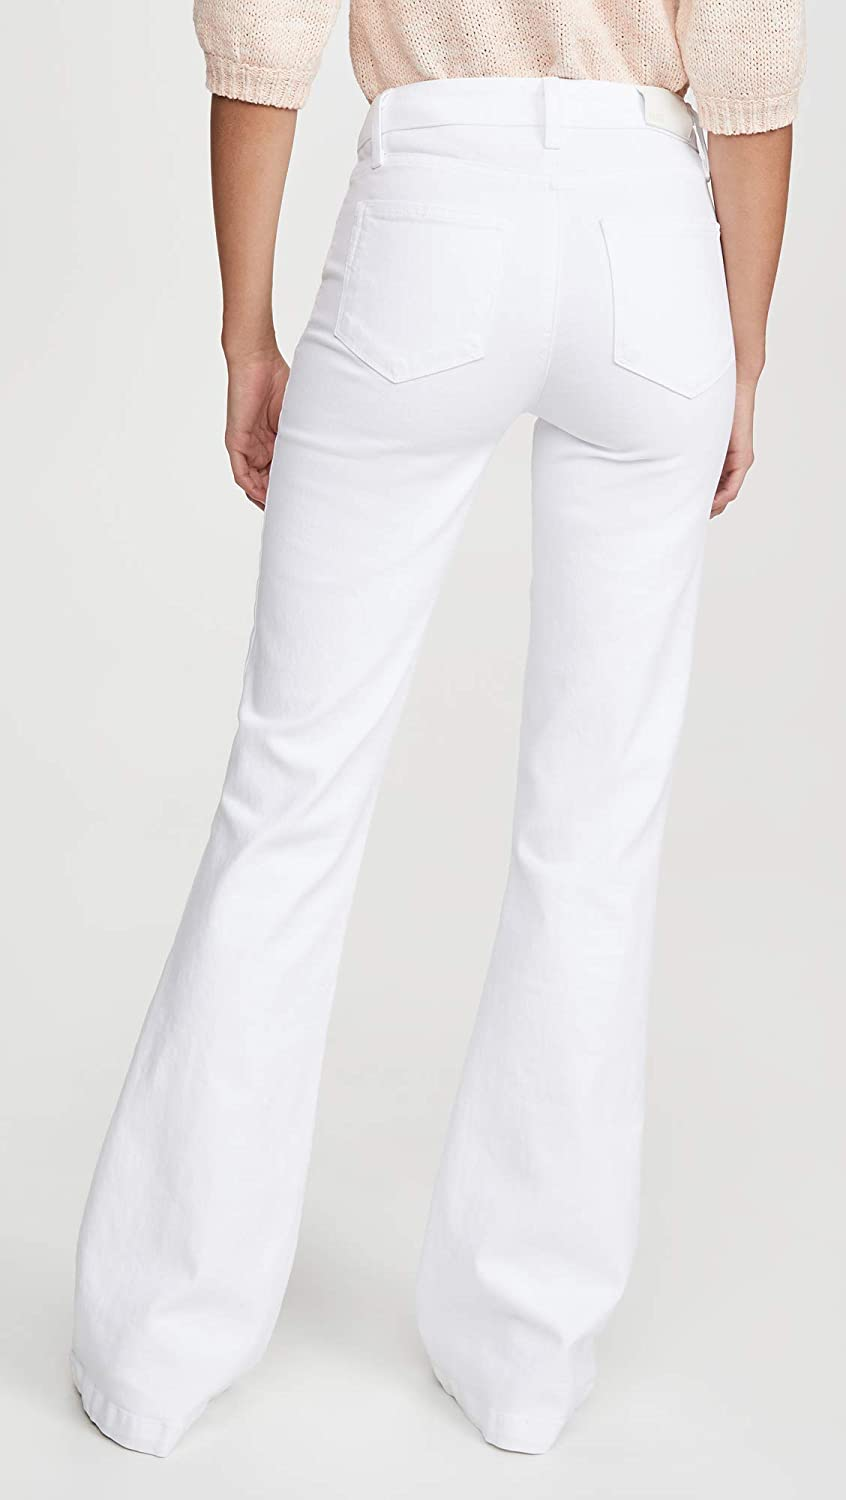 Paige Women's Genevieve Exposed Button Fly Jeans Crisp White